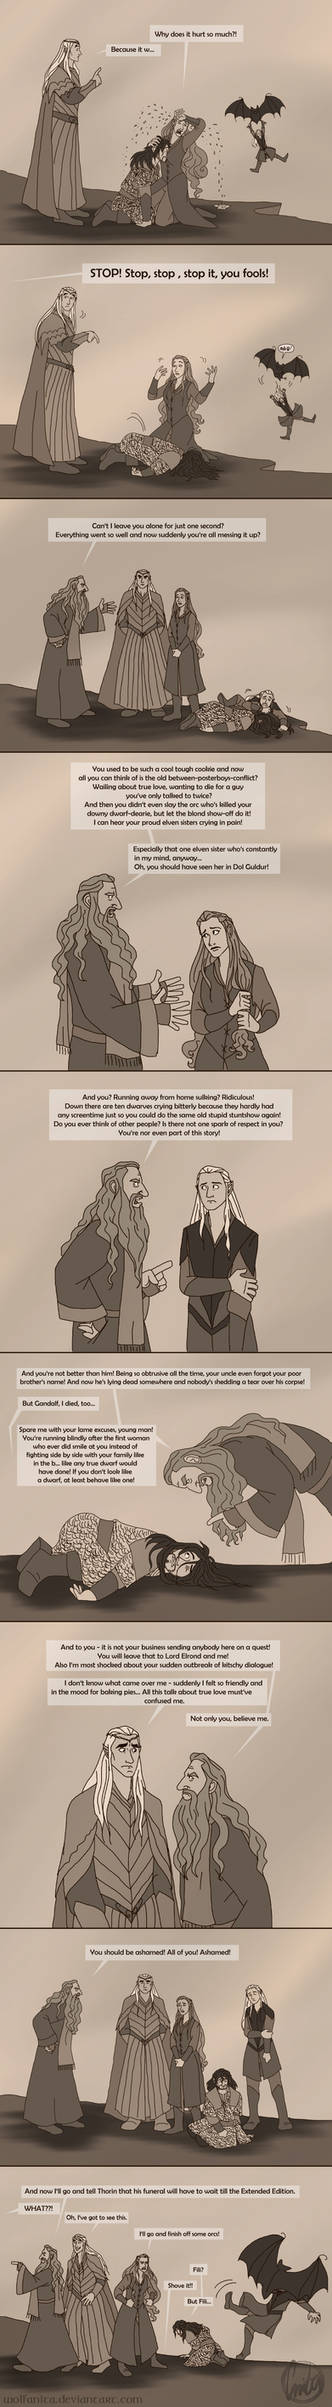 The Hobbit: Gandalf to the Rescue!